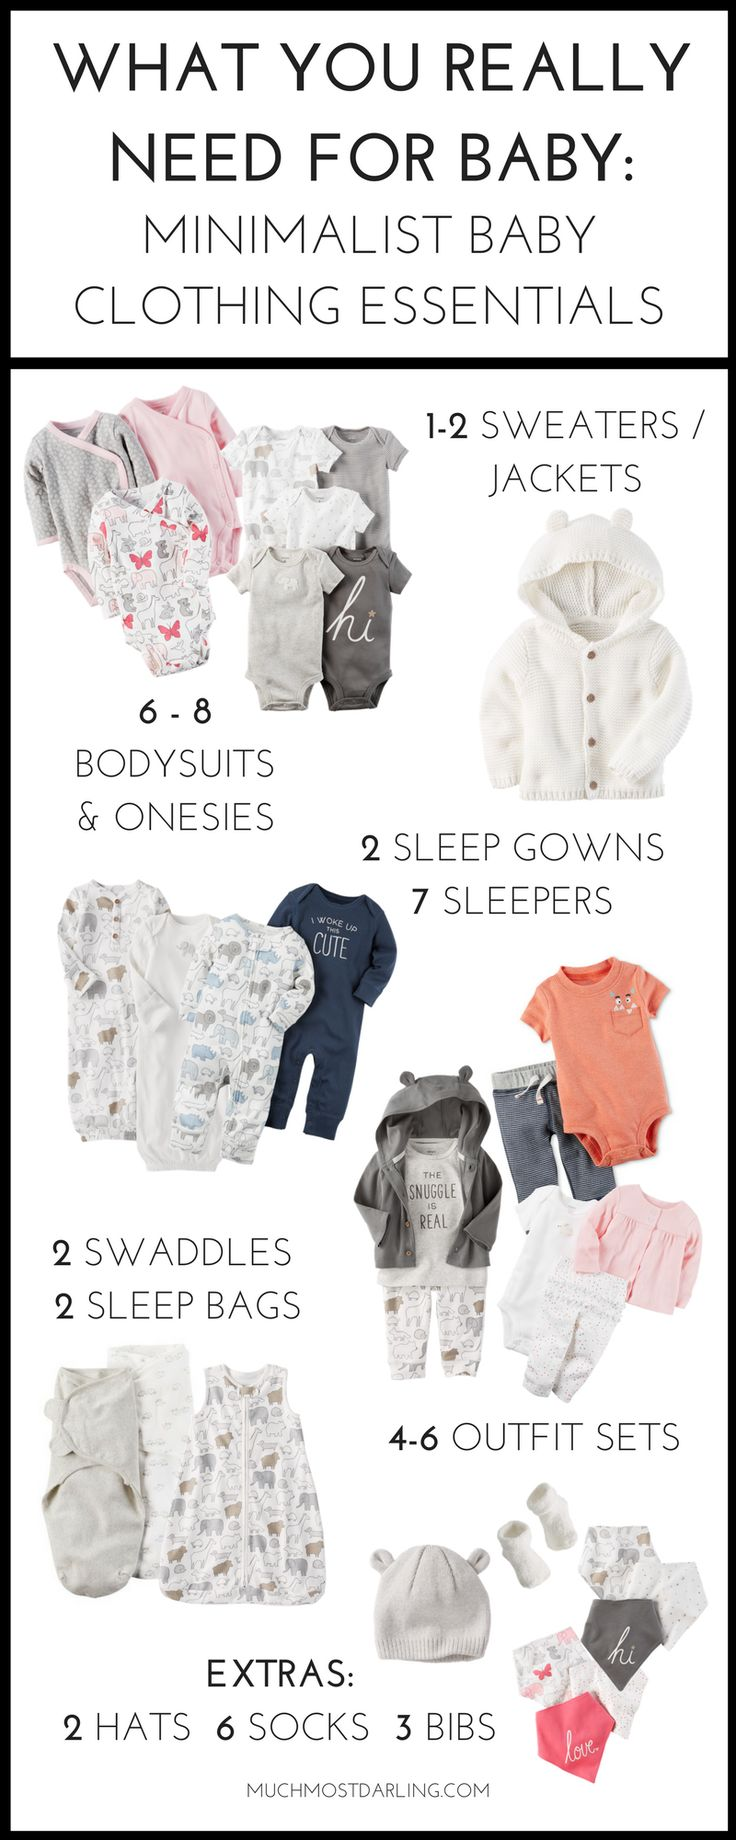 Wondering how many baby clothes you need for each size? Come see my first year essentials for a minimalist capsule wardrobe for your baby at Carter's.